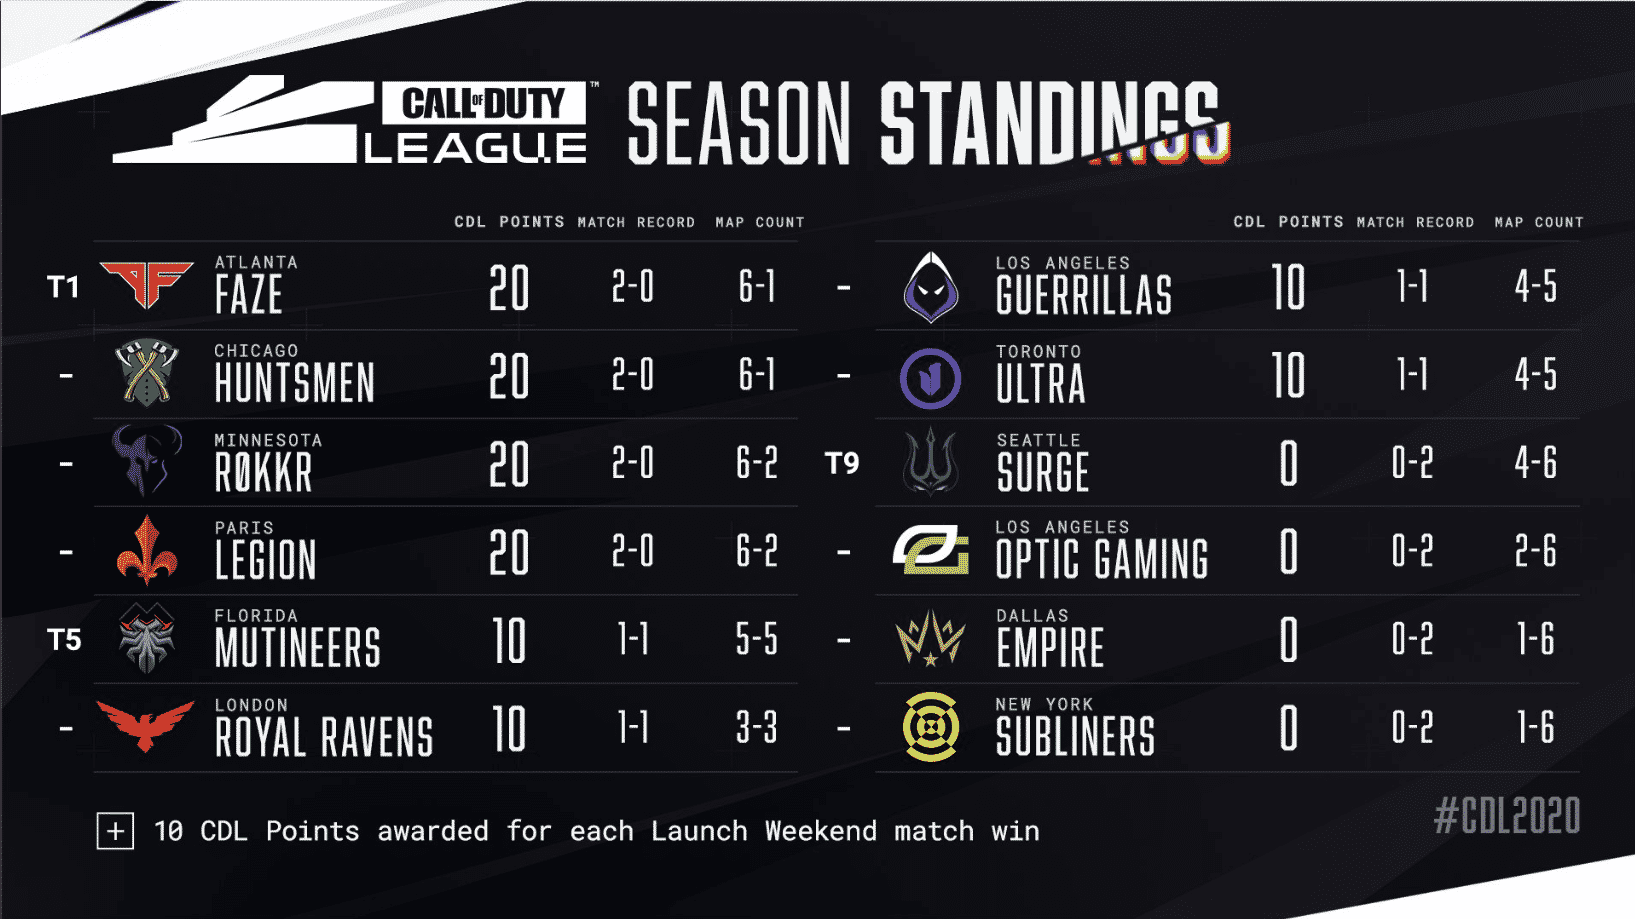 CDL Season Standings Launch Weekend